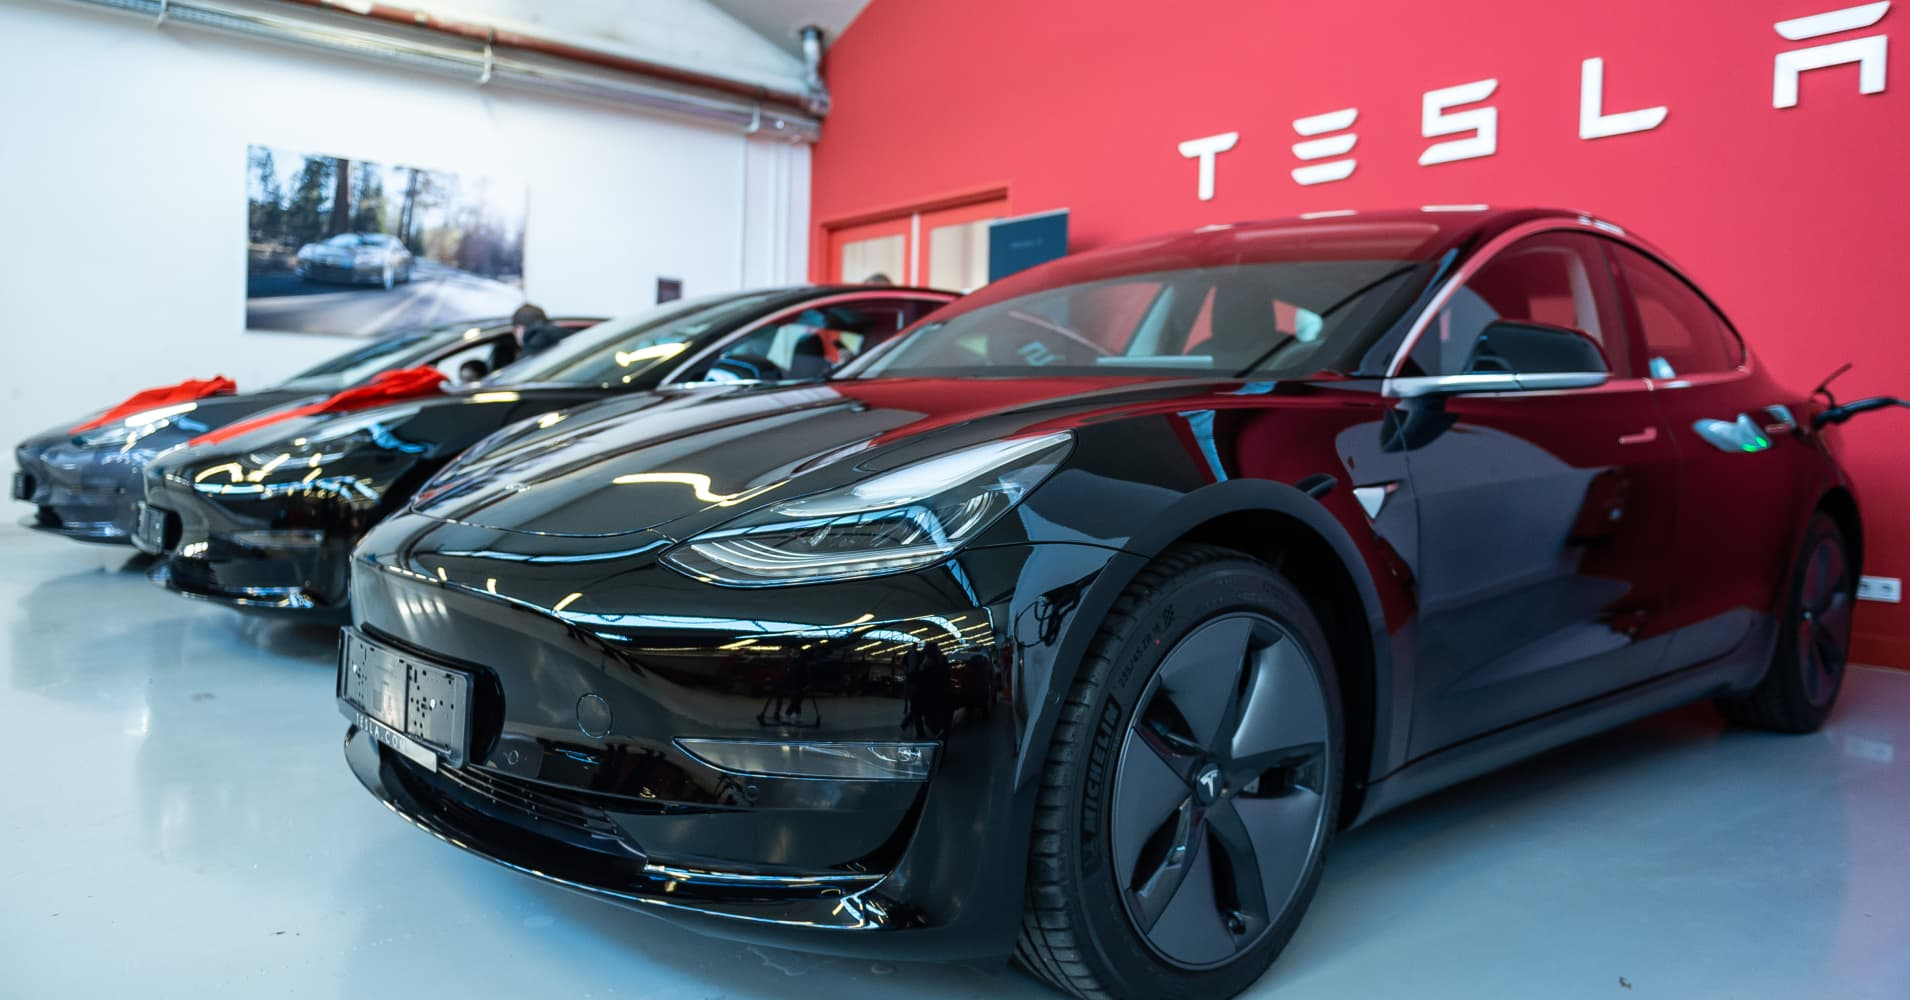 Read Elon Musk's email urging Tesla employees to help with deliveries